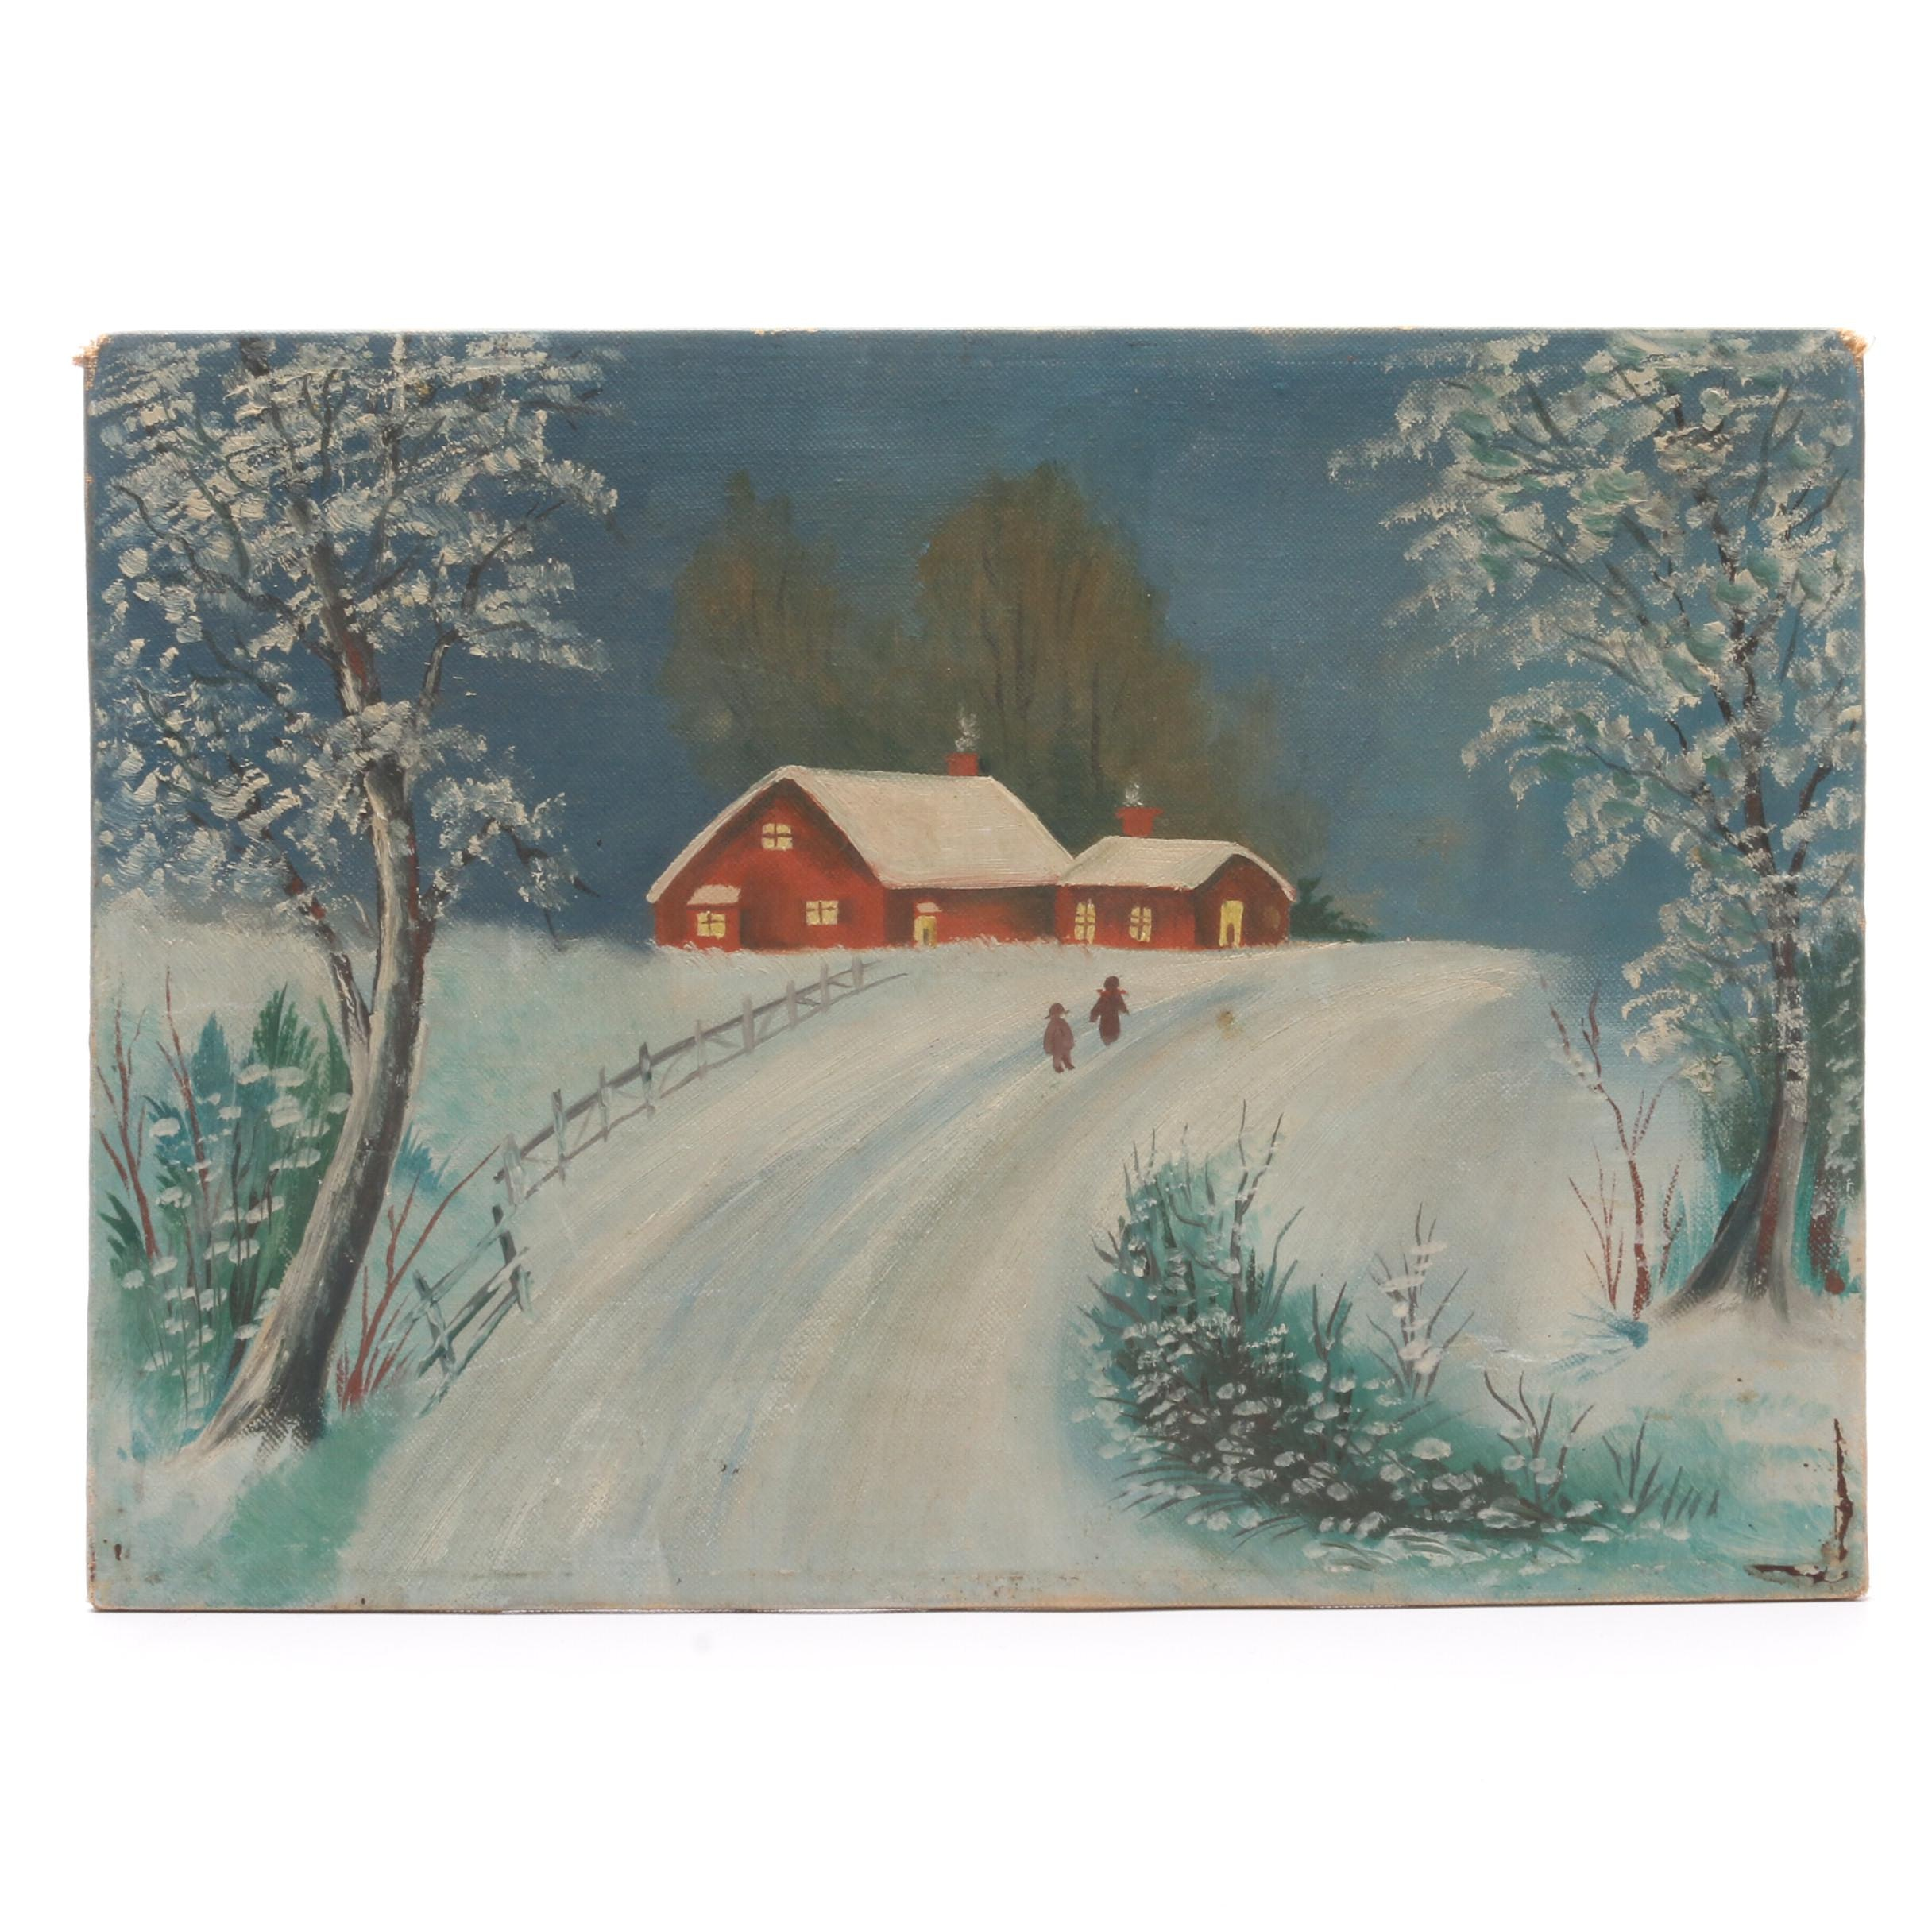 Vintage Naive Oil Painting of Winter Pastoral Landscape